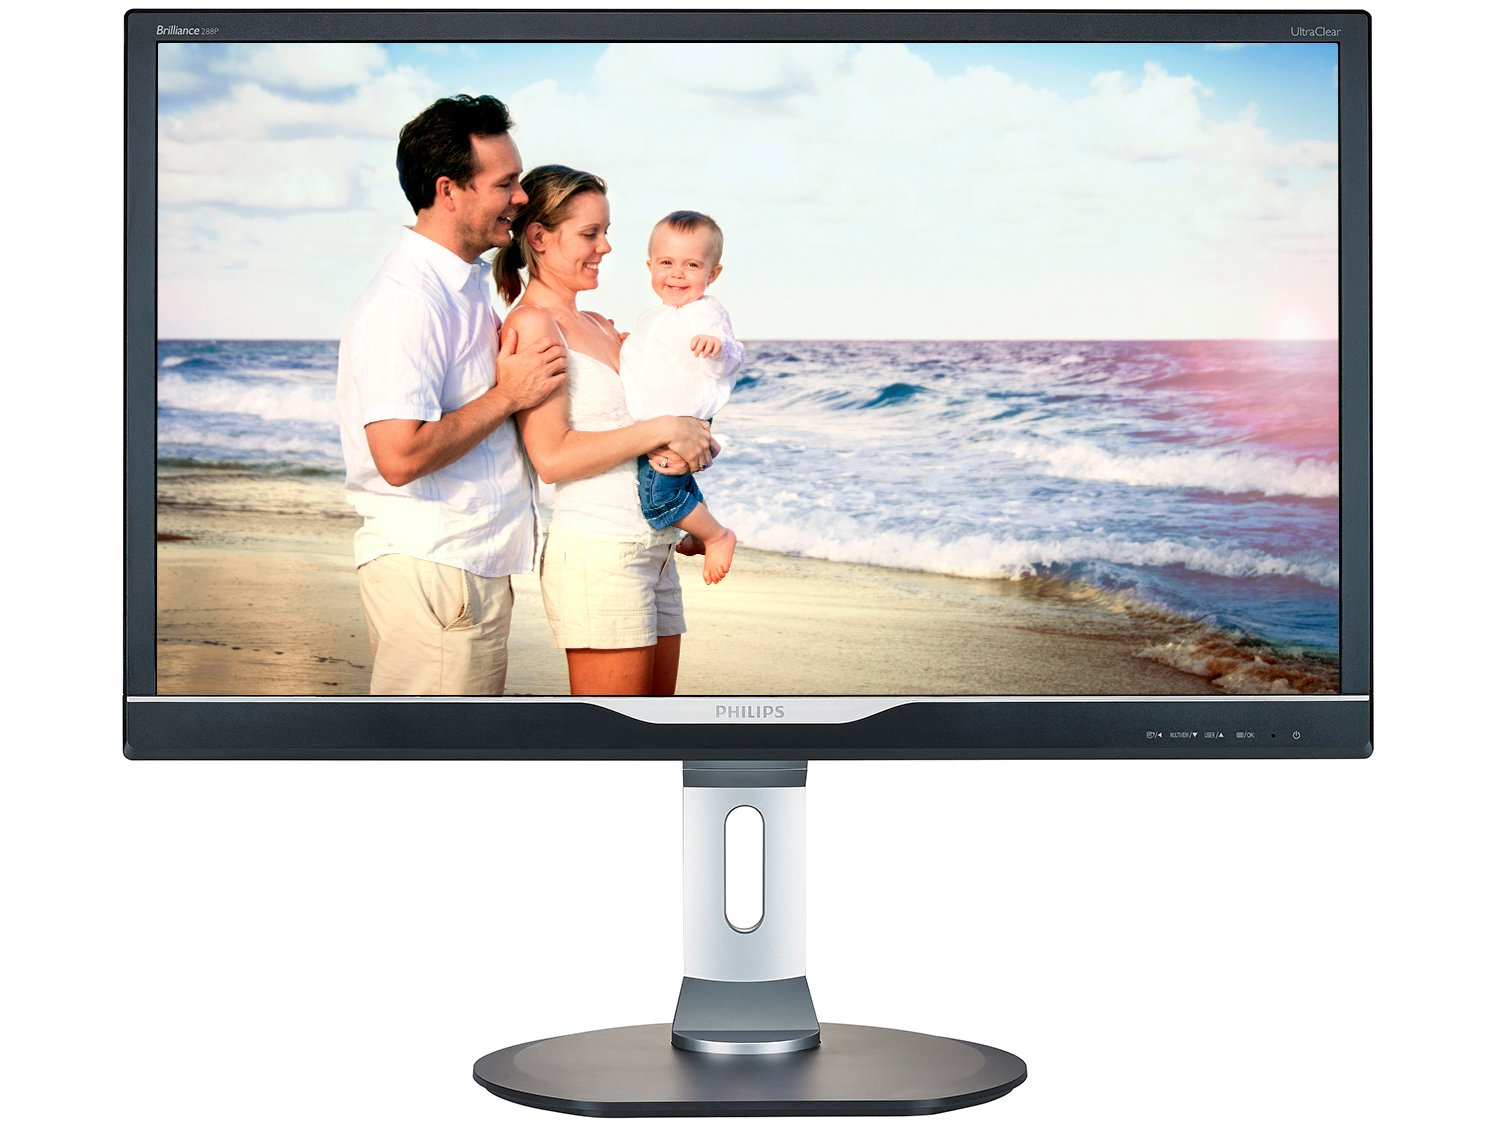 Foto 7 - Monitor para PC Ultra HD Philips LCD Widescreen - 28 288P6LJEB/57